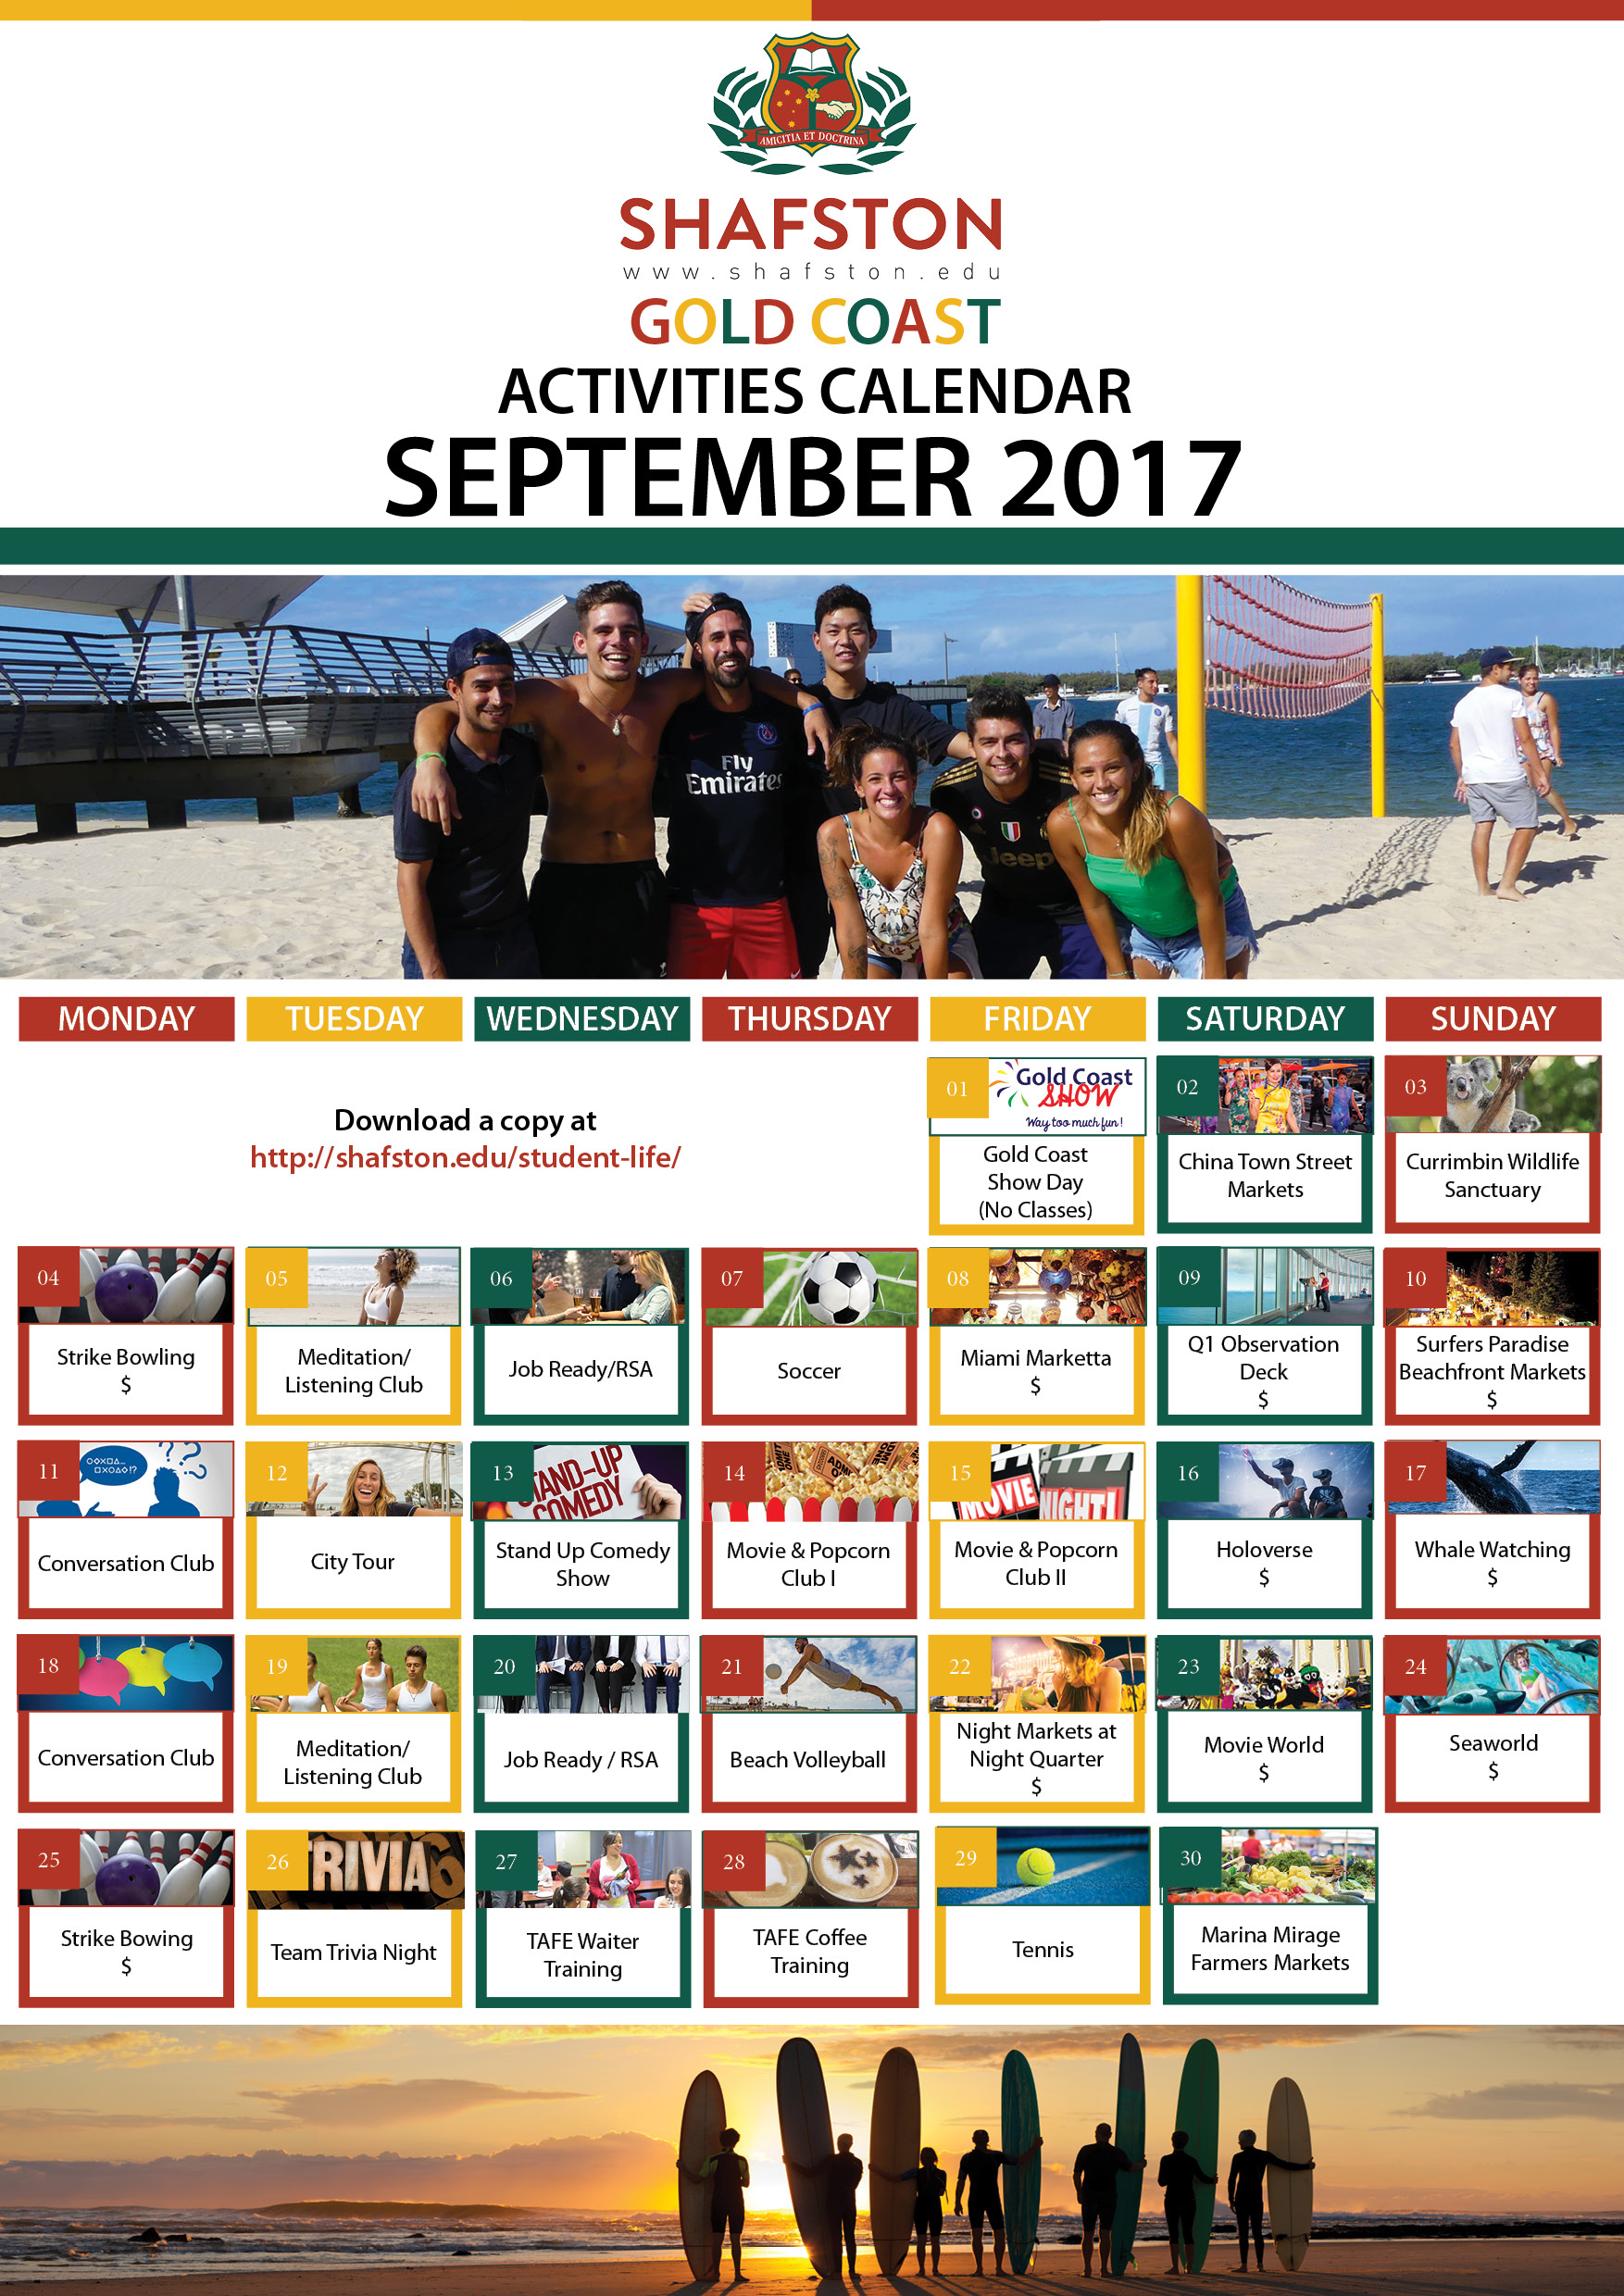 September 2017 Calendar (Gold Coast)